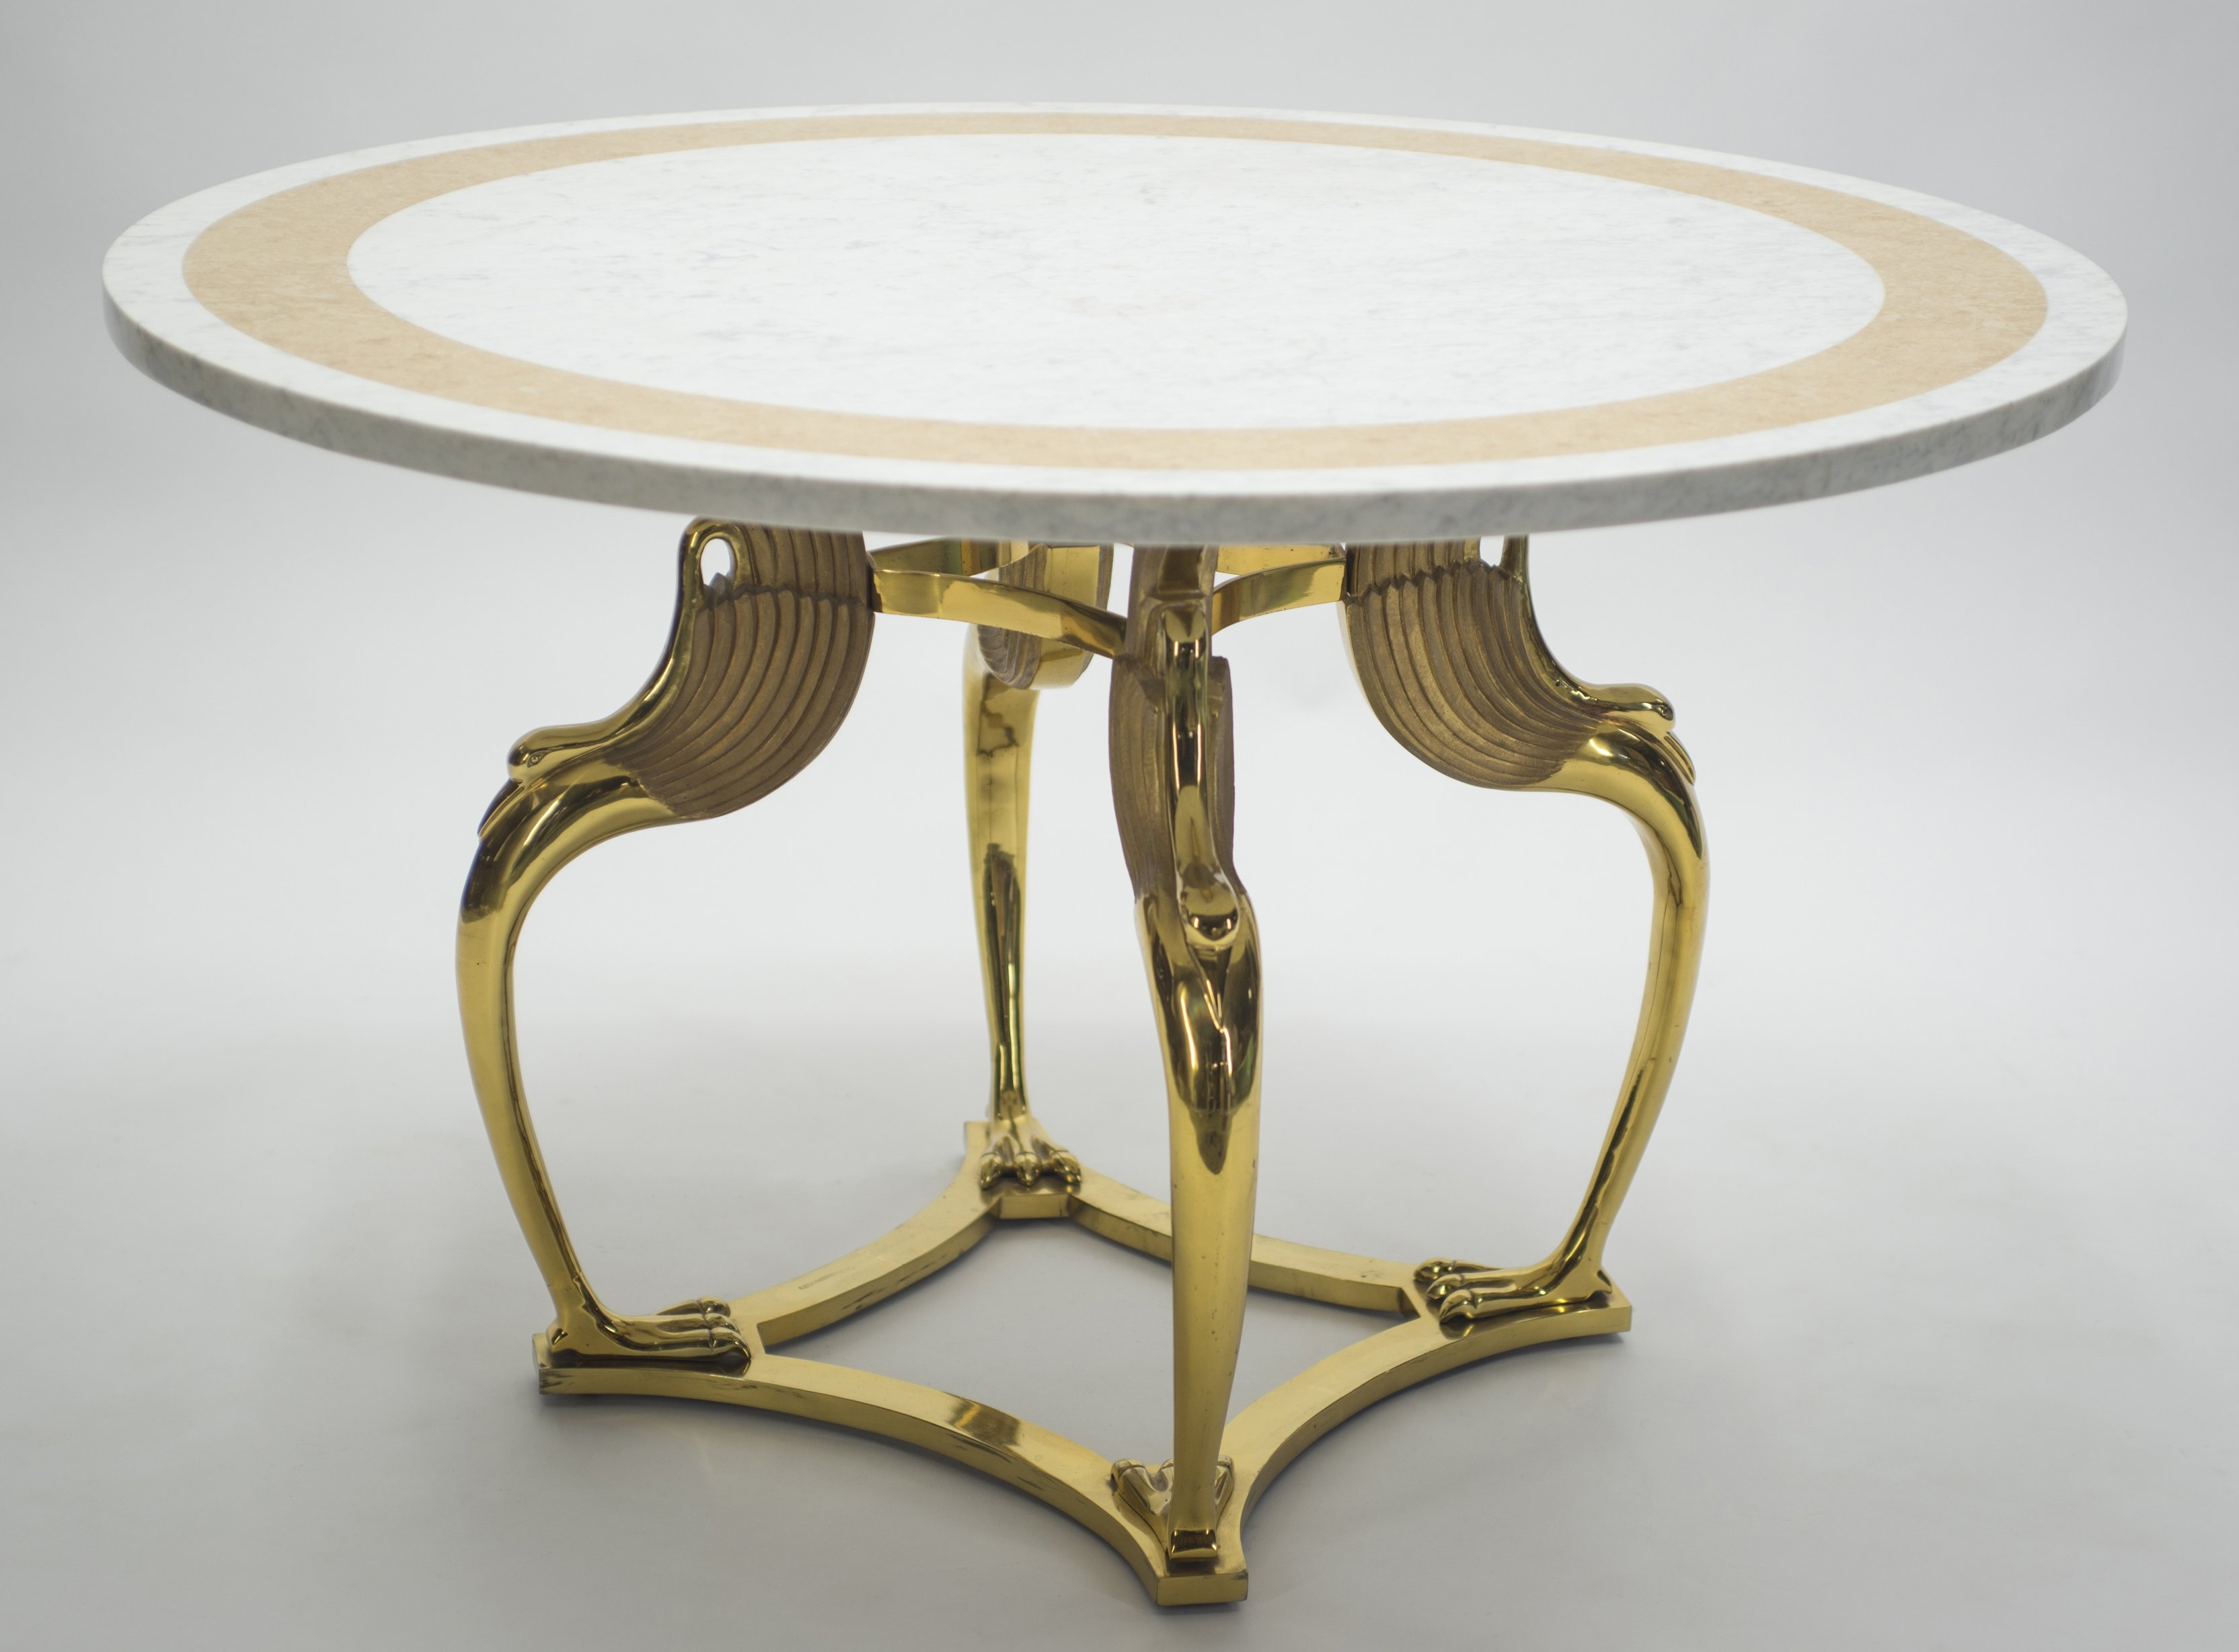 Unique Mid Century Roger Thibier Brass Marble Dining Table 1970s 129170